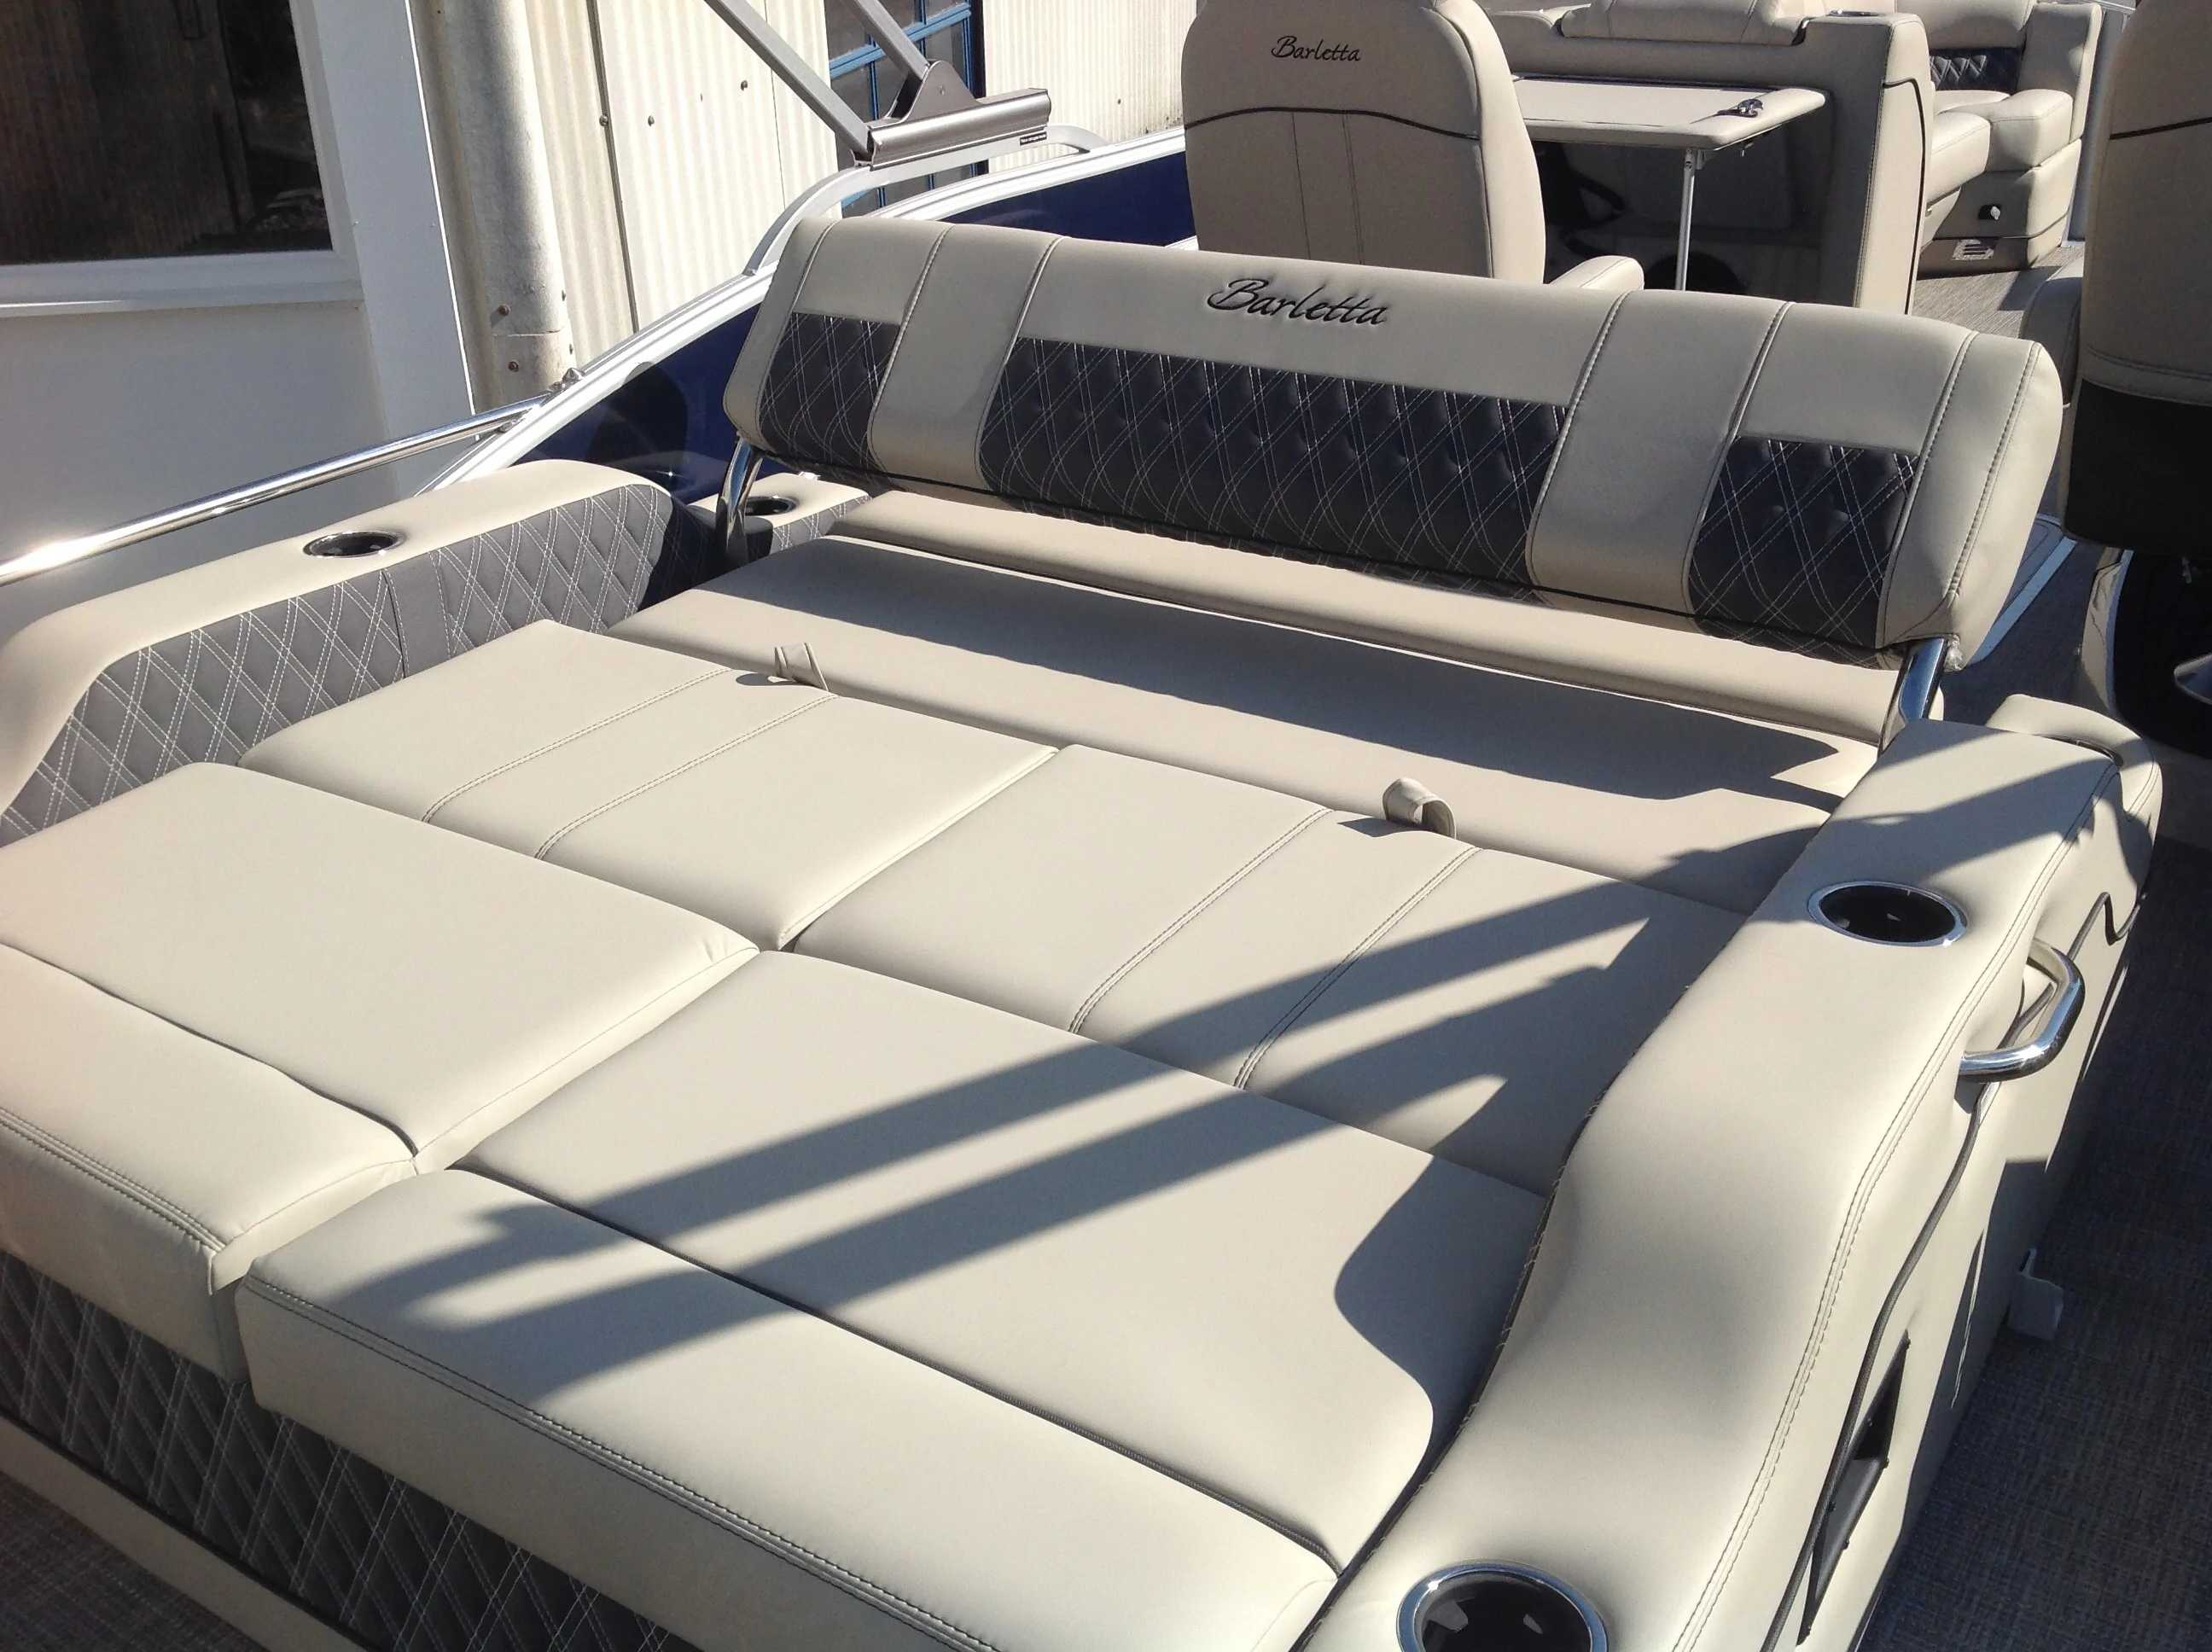 2021 Barletta boat for sale, model of the boat is L25UC & Image # 14 of 17